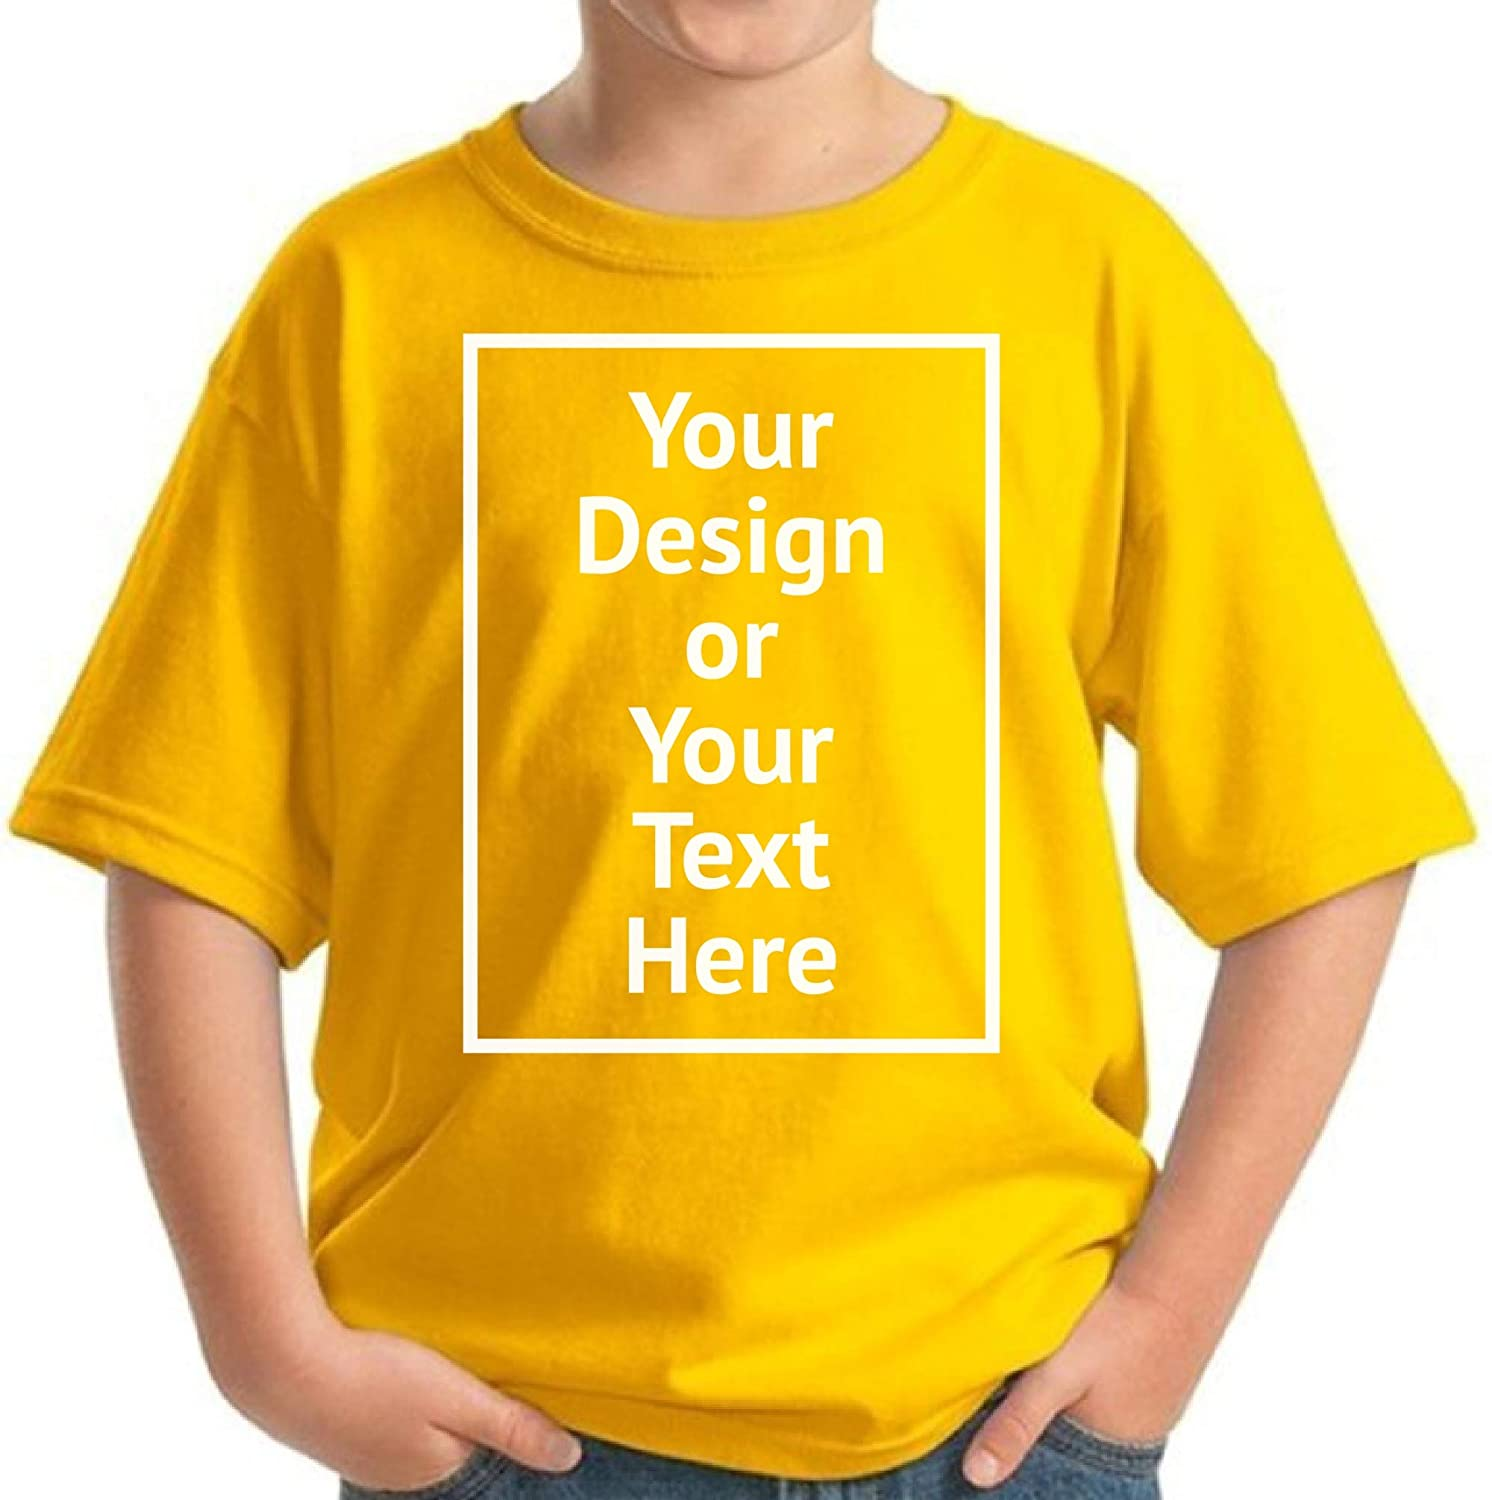 Custom Shirt for Kids Boys Girls Personalized Your Own Image Photo Text T-Shirt Front Print ONLY